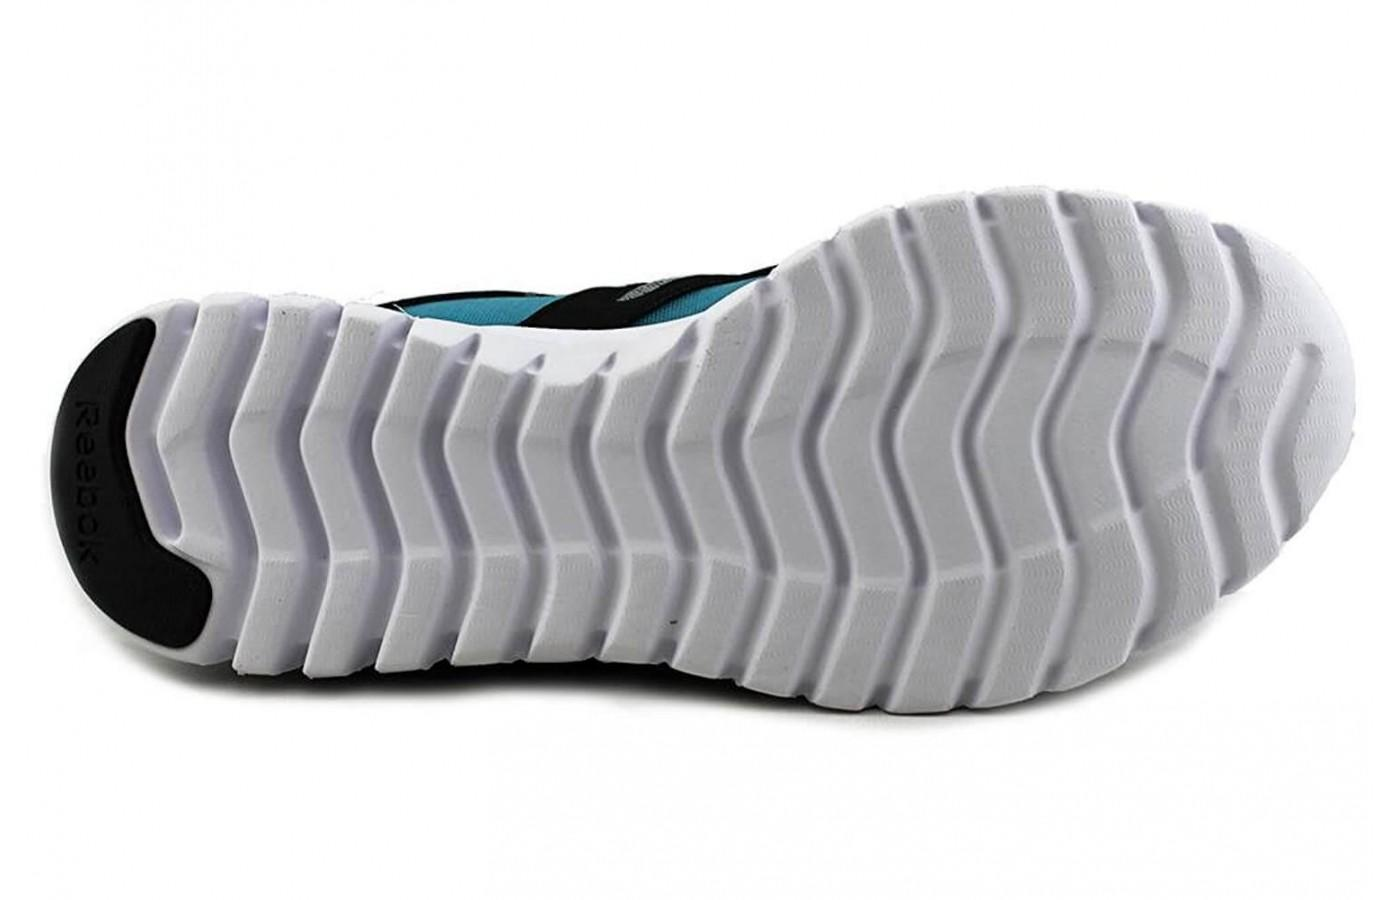 Grooves in the sole allow for flexibility